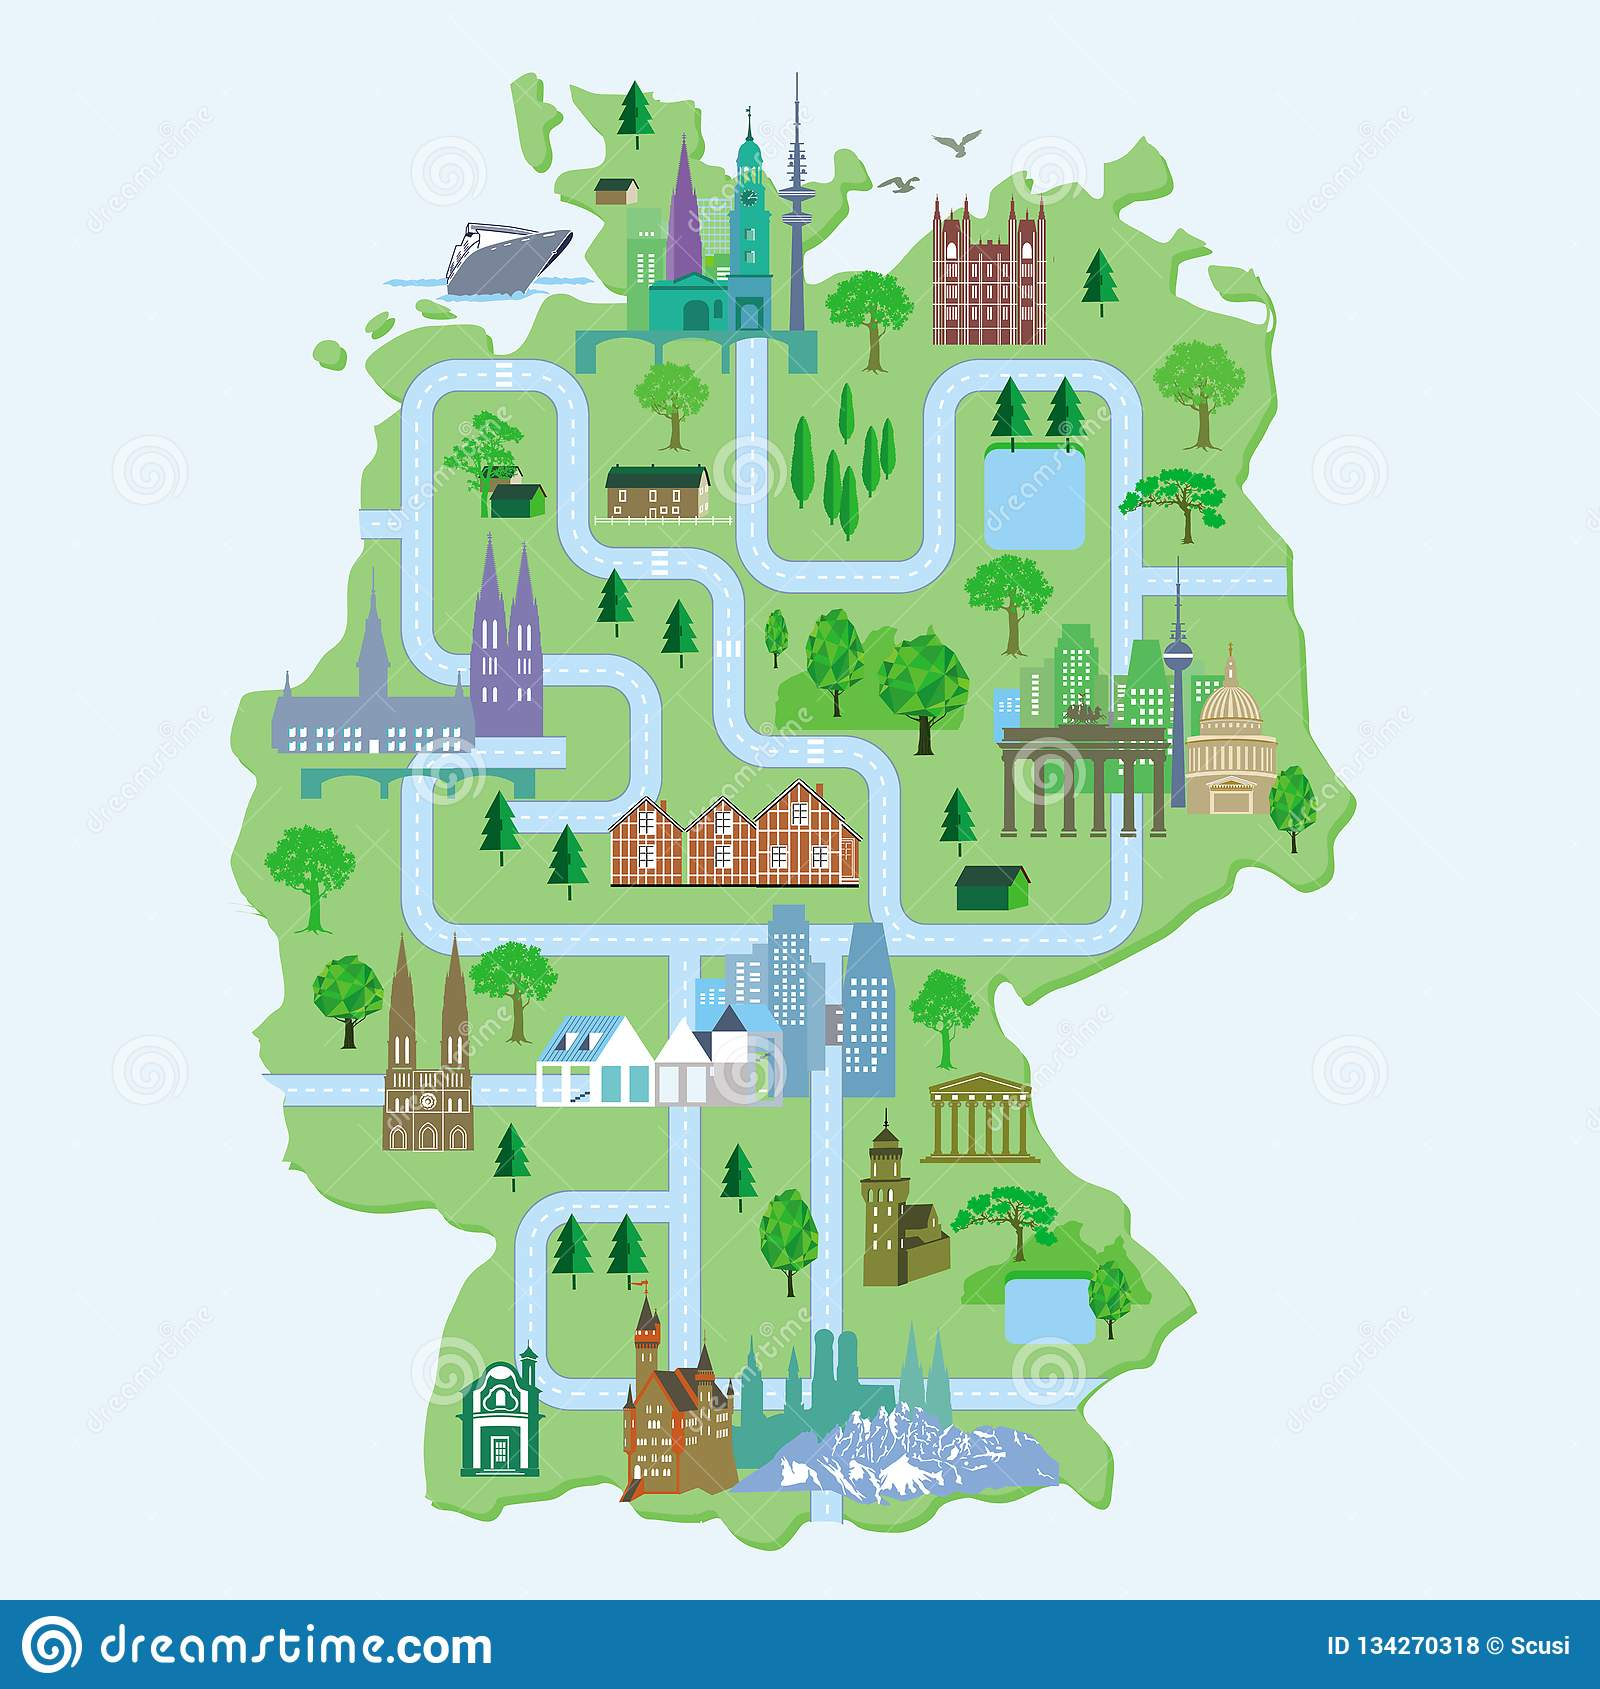 Germany Map Of Cities.Germany Map With Cities Stock Illustration Illustration Of Church